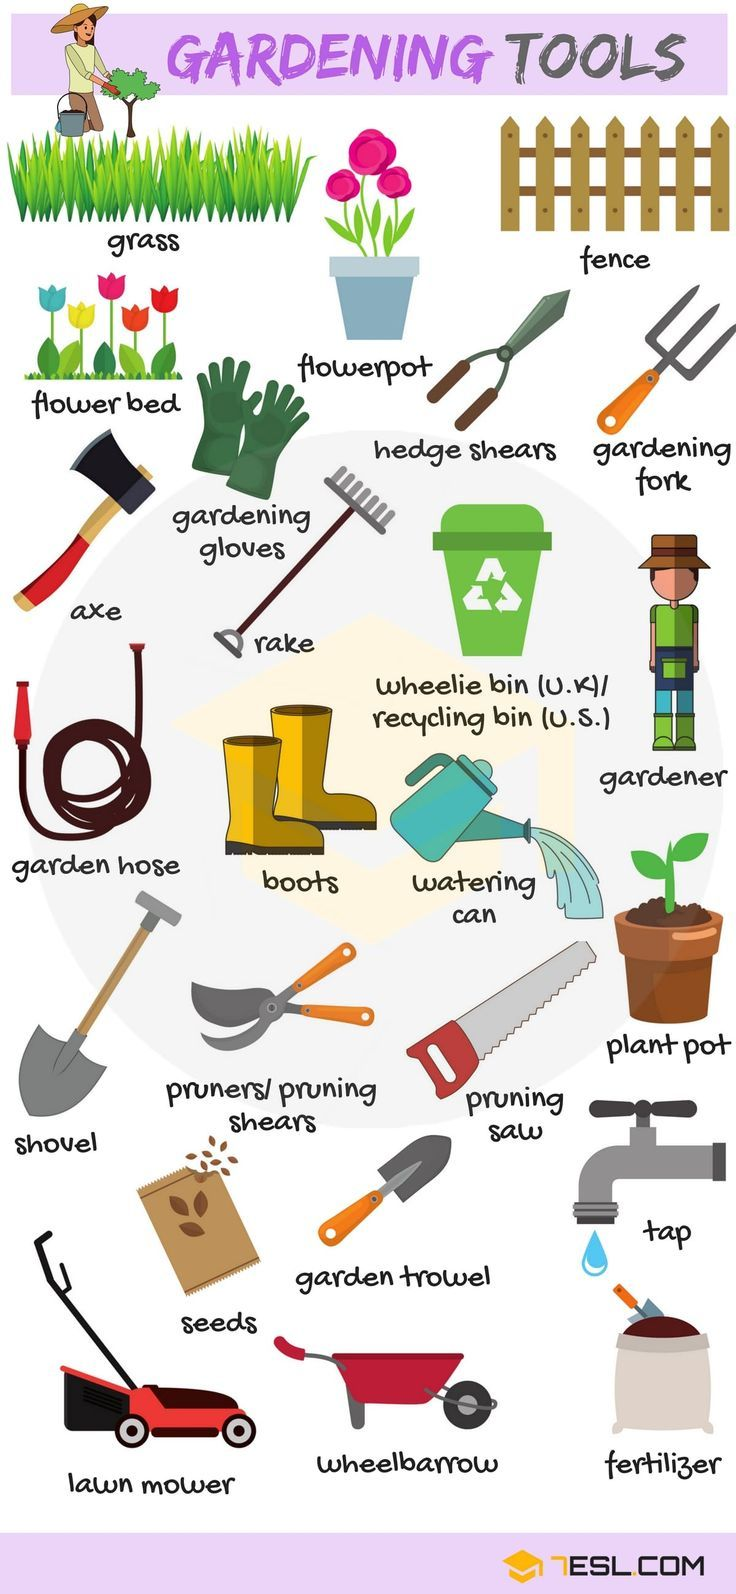 Gardening Tools Names List With Useful Pictures Englisch